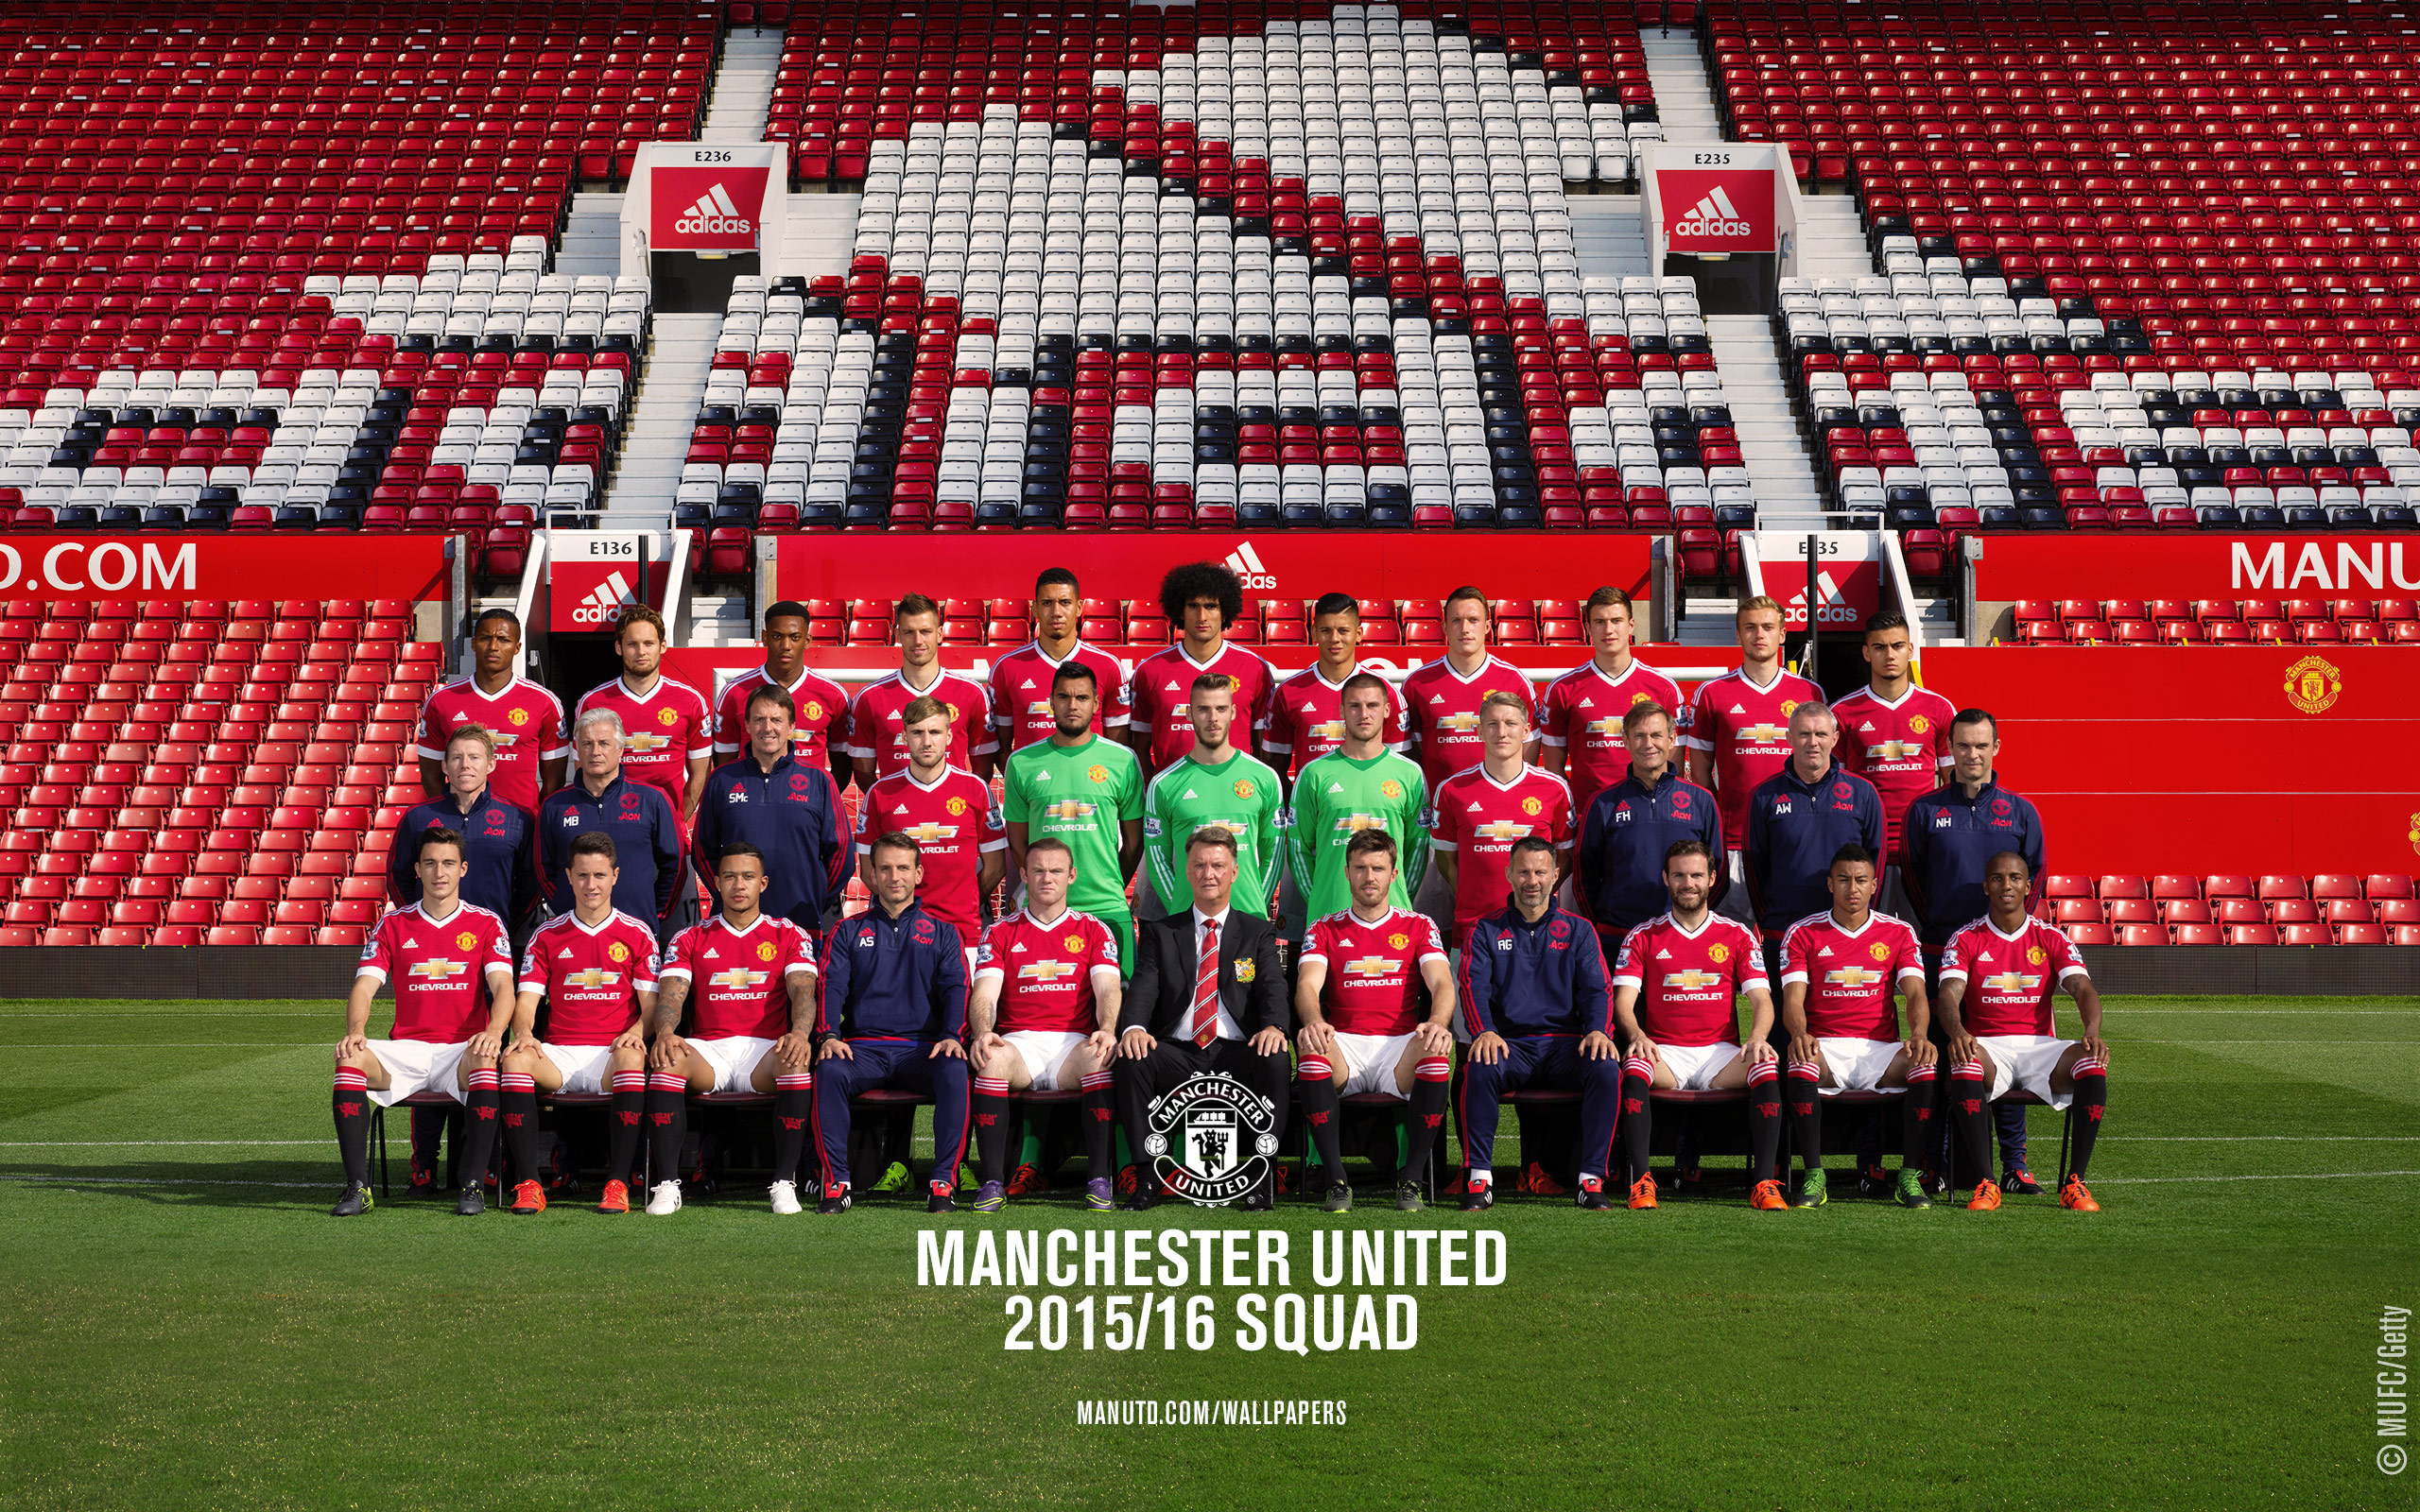 PICTURE: Manchester United's 2015-16 squad photo